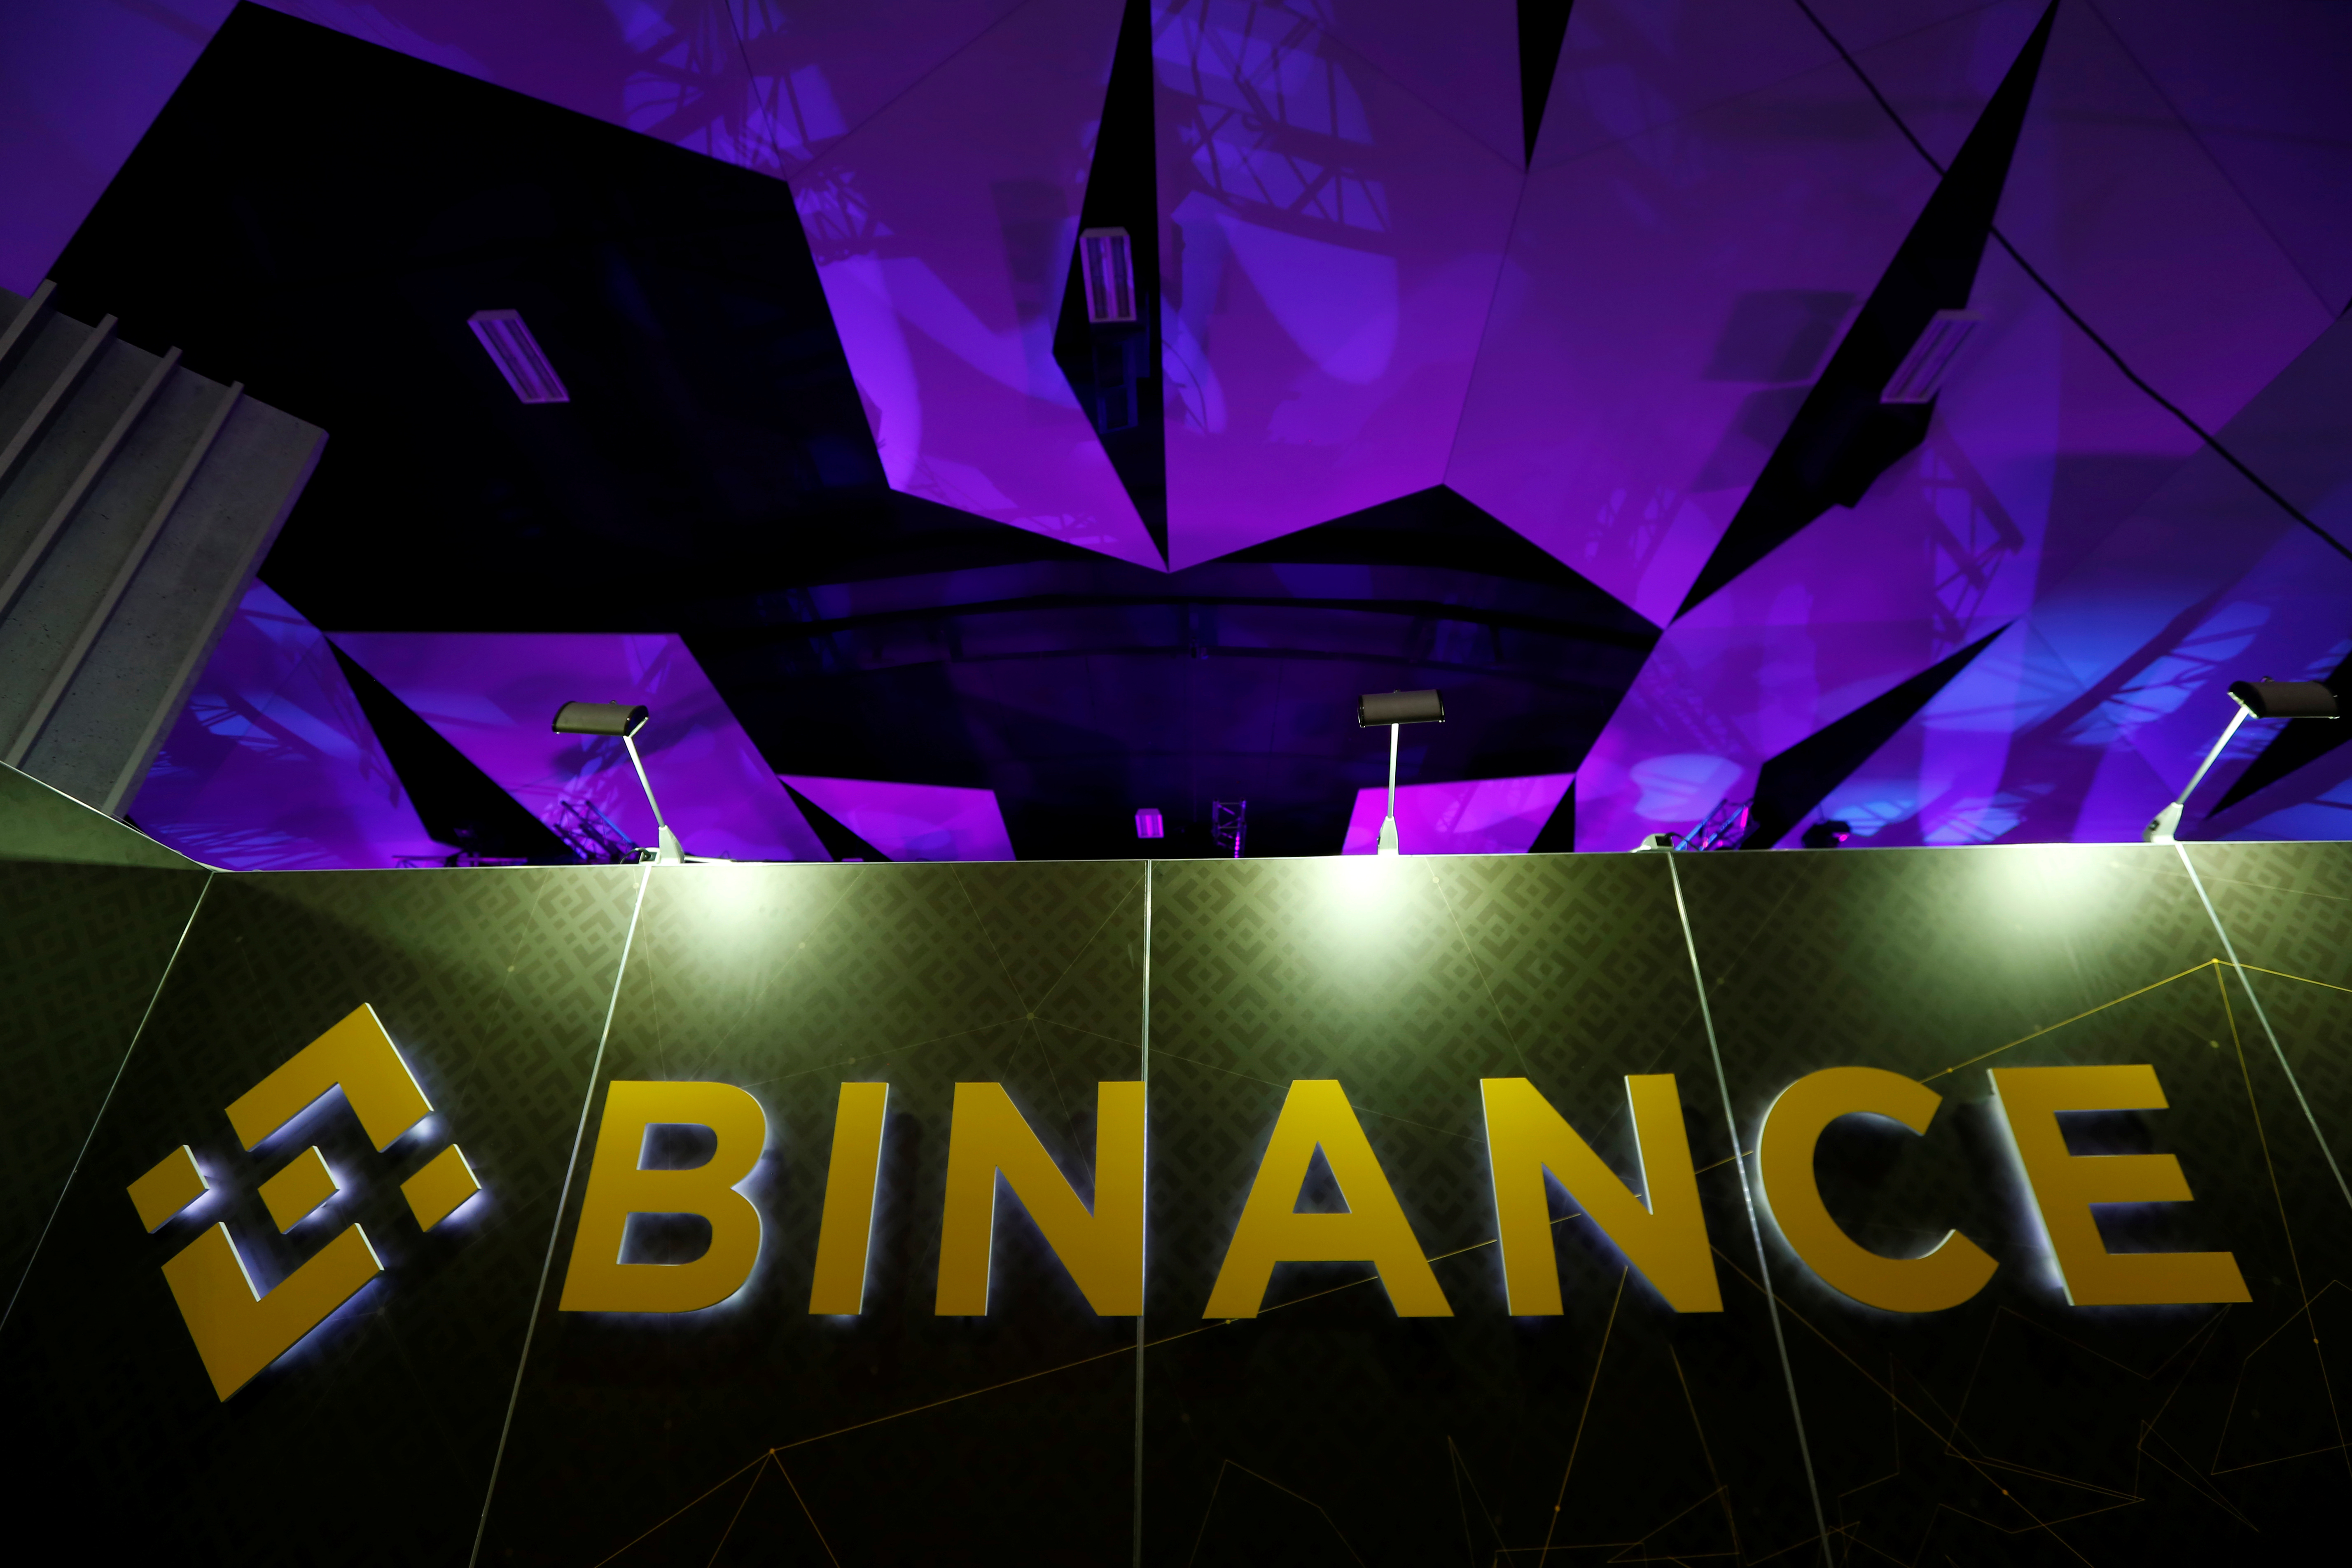 The logo of Binance is seen on their exhibition stand at the Delta Summit in St Julian's, Malta October 4, 2018. REUTERS/Darrin Zammit Lupi